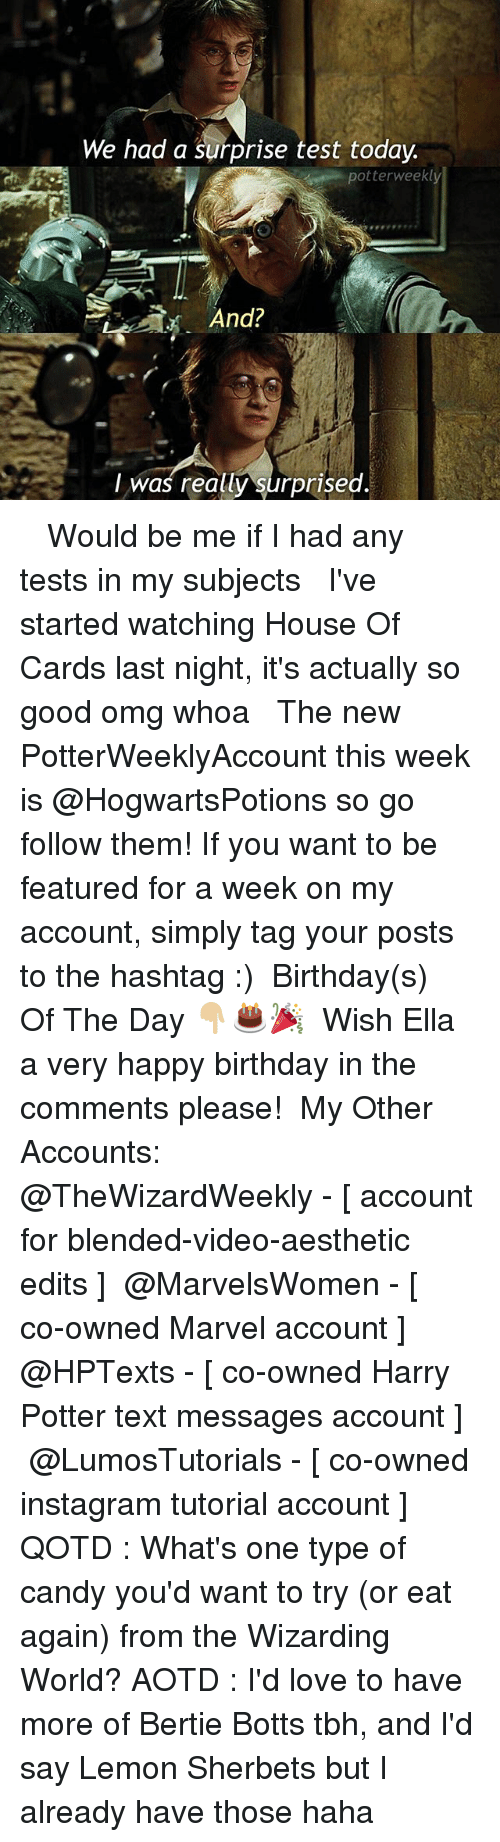 House of Cards: We had a surprise test today  potterweekly  And?  I was really surprised ✎✐✎ ↯ ⇢ Would be me if I had any tests in my subjects ↯ ⇢ I've started watching House Of Cards last night, it's actually so good omg whoa ↯ ⇢ The new PotterWeeklyAccount this week is @HogwartsPotions so go follow them! If you want to be featured for a week on my account, simply tag your posts to the hashtag :) ✎✐✎ Birthday(s) Of The Day 👇🏼🎂🎉 ⇢ Wish Ella a very happy birthday in the comments please! ✎✐✎ My Other Accounts: ⇢ @TheWizardWeekly - [ account for blended-video-aesthetic edits ] ⇢ @MarvelsWomen - [ co-owned Marvel account ] ⇢ @HPTexts - [ co-owned Harry Potter text messages account ] ⇢ @LumosTutorials - [ co-owned instagram tutorial account ] ✎✐✎ QOTD : What's one type of candy you'd want to try (or eat again) from the Wizarding World? AOTD : I'd love to have more of Bertie Botts tbh, and I'd say Lemon Sherbets but I already have those haha